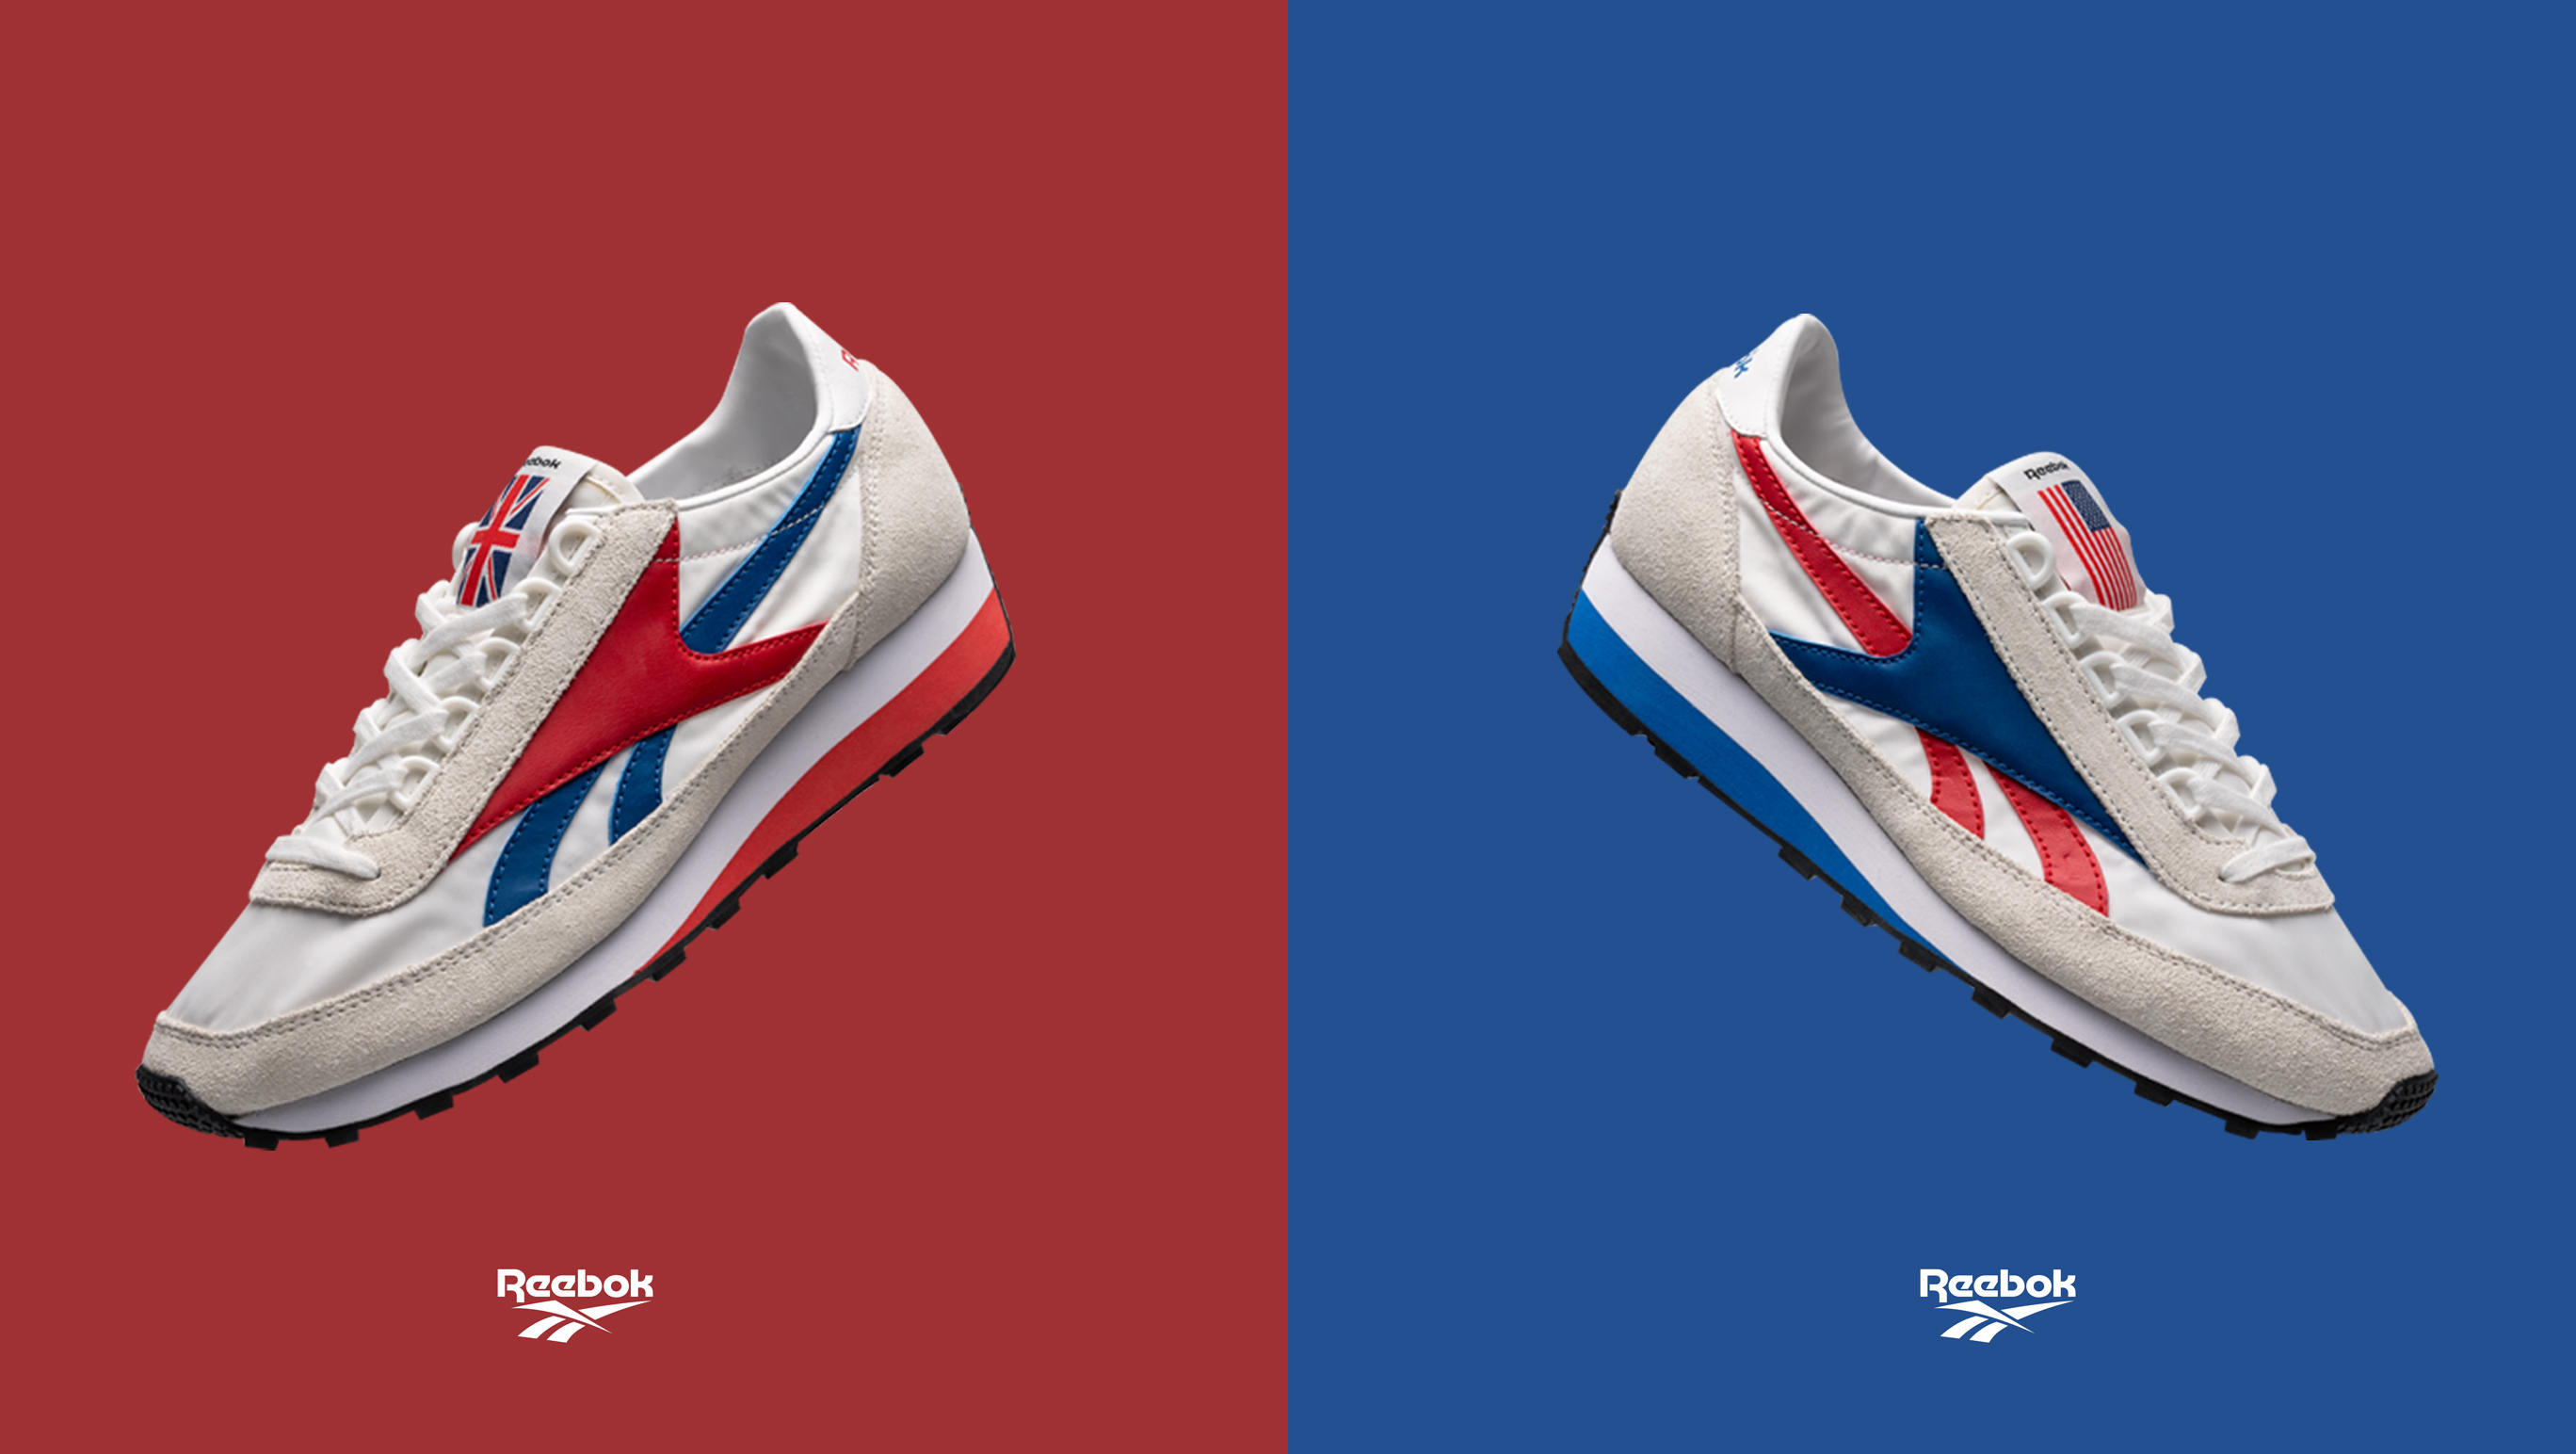 Introducing the Reebok Aztec – size? Exclusive